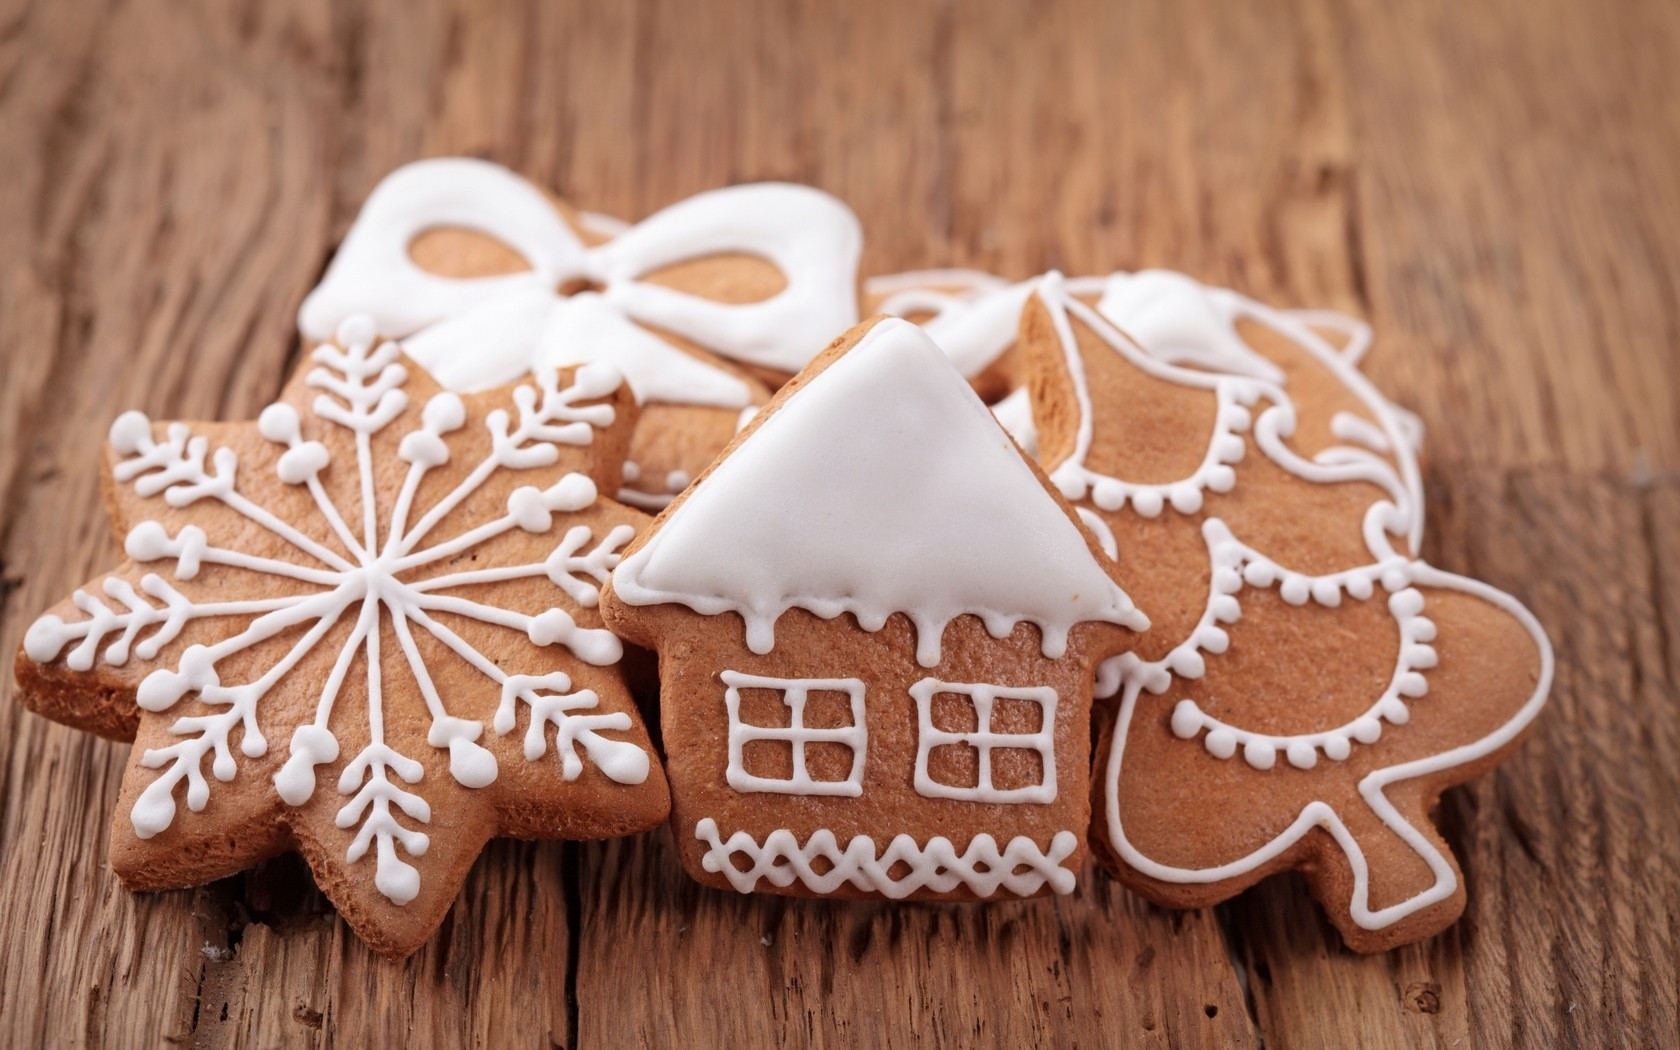 Christmas Cookies Wallpaper  New Year Gingerbread Ornaments wallpapers